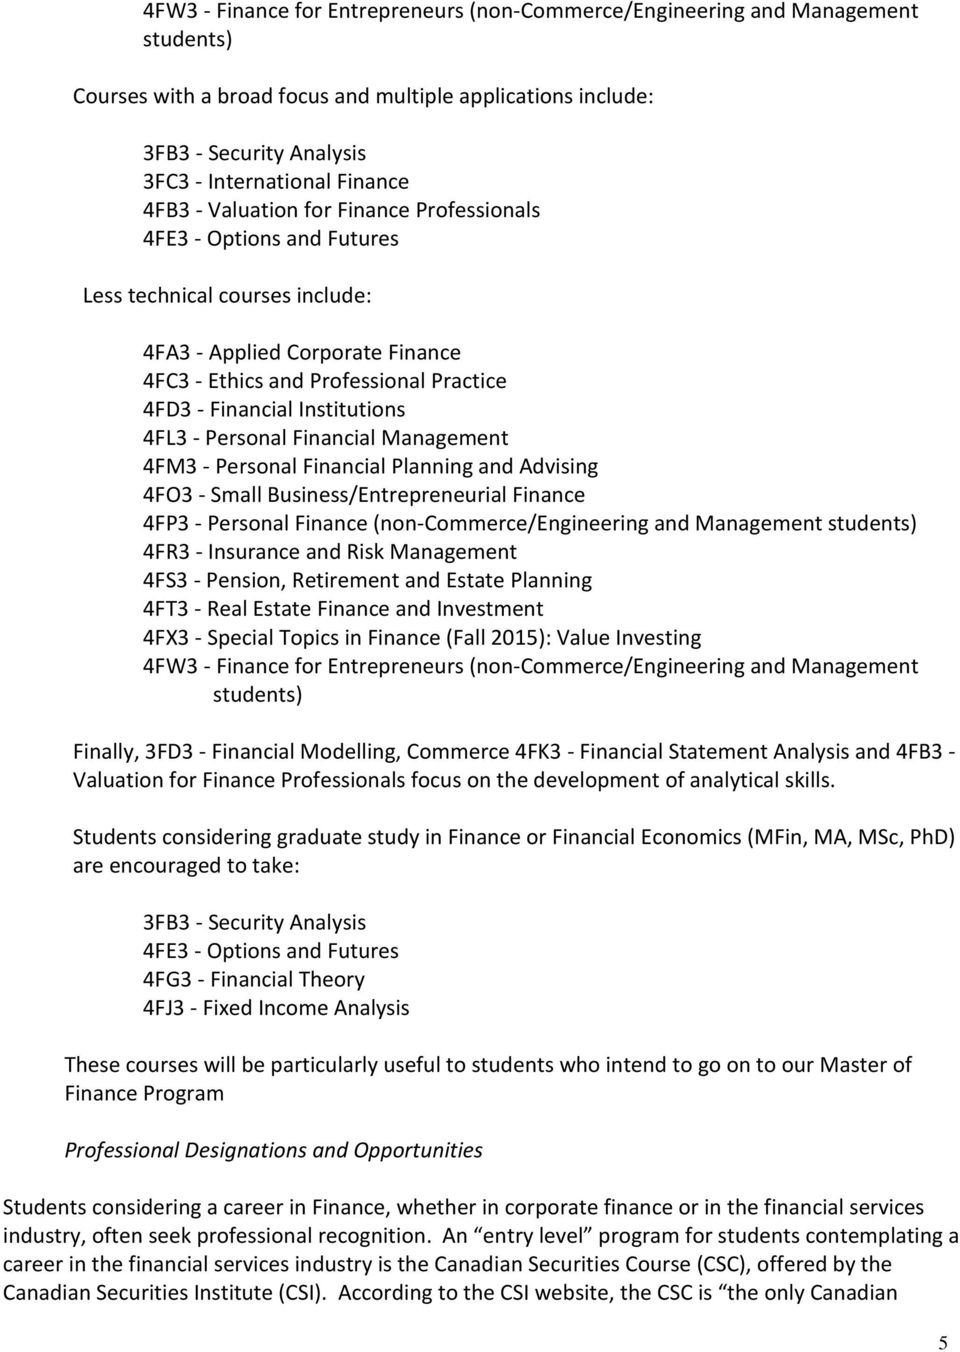 phd topics in finance management